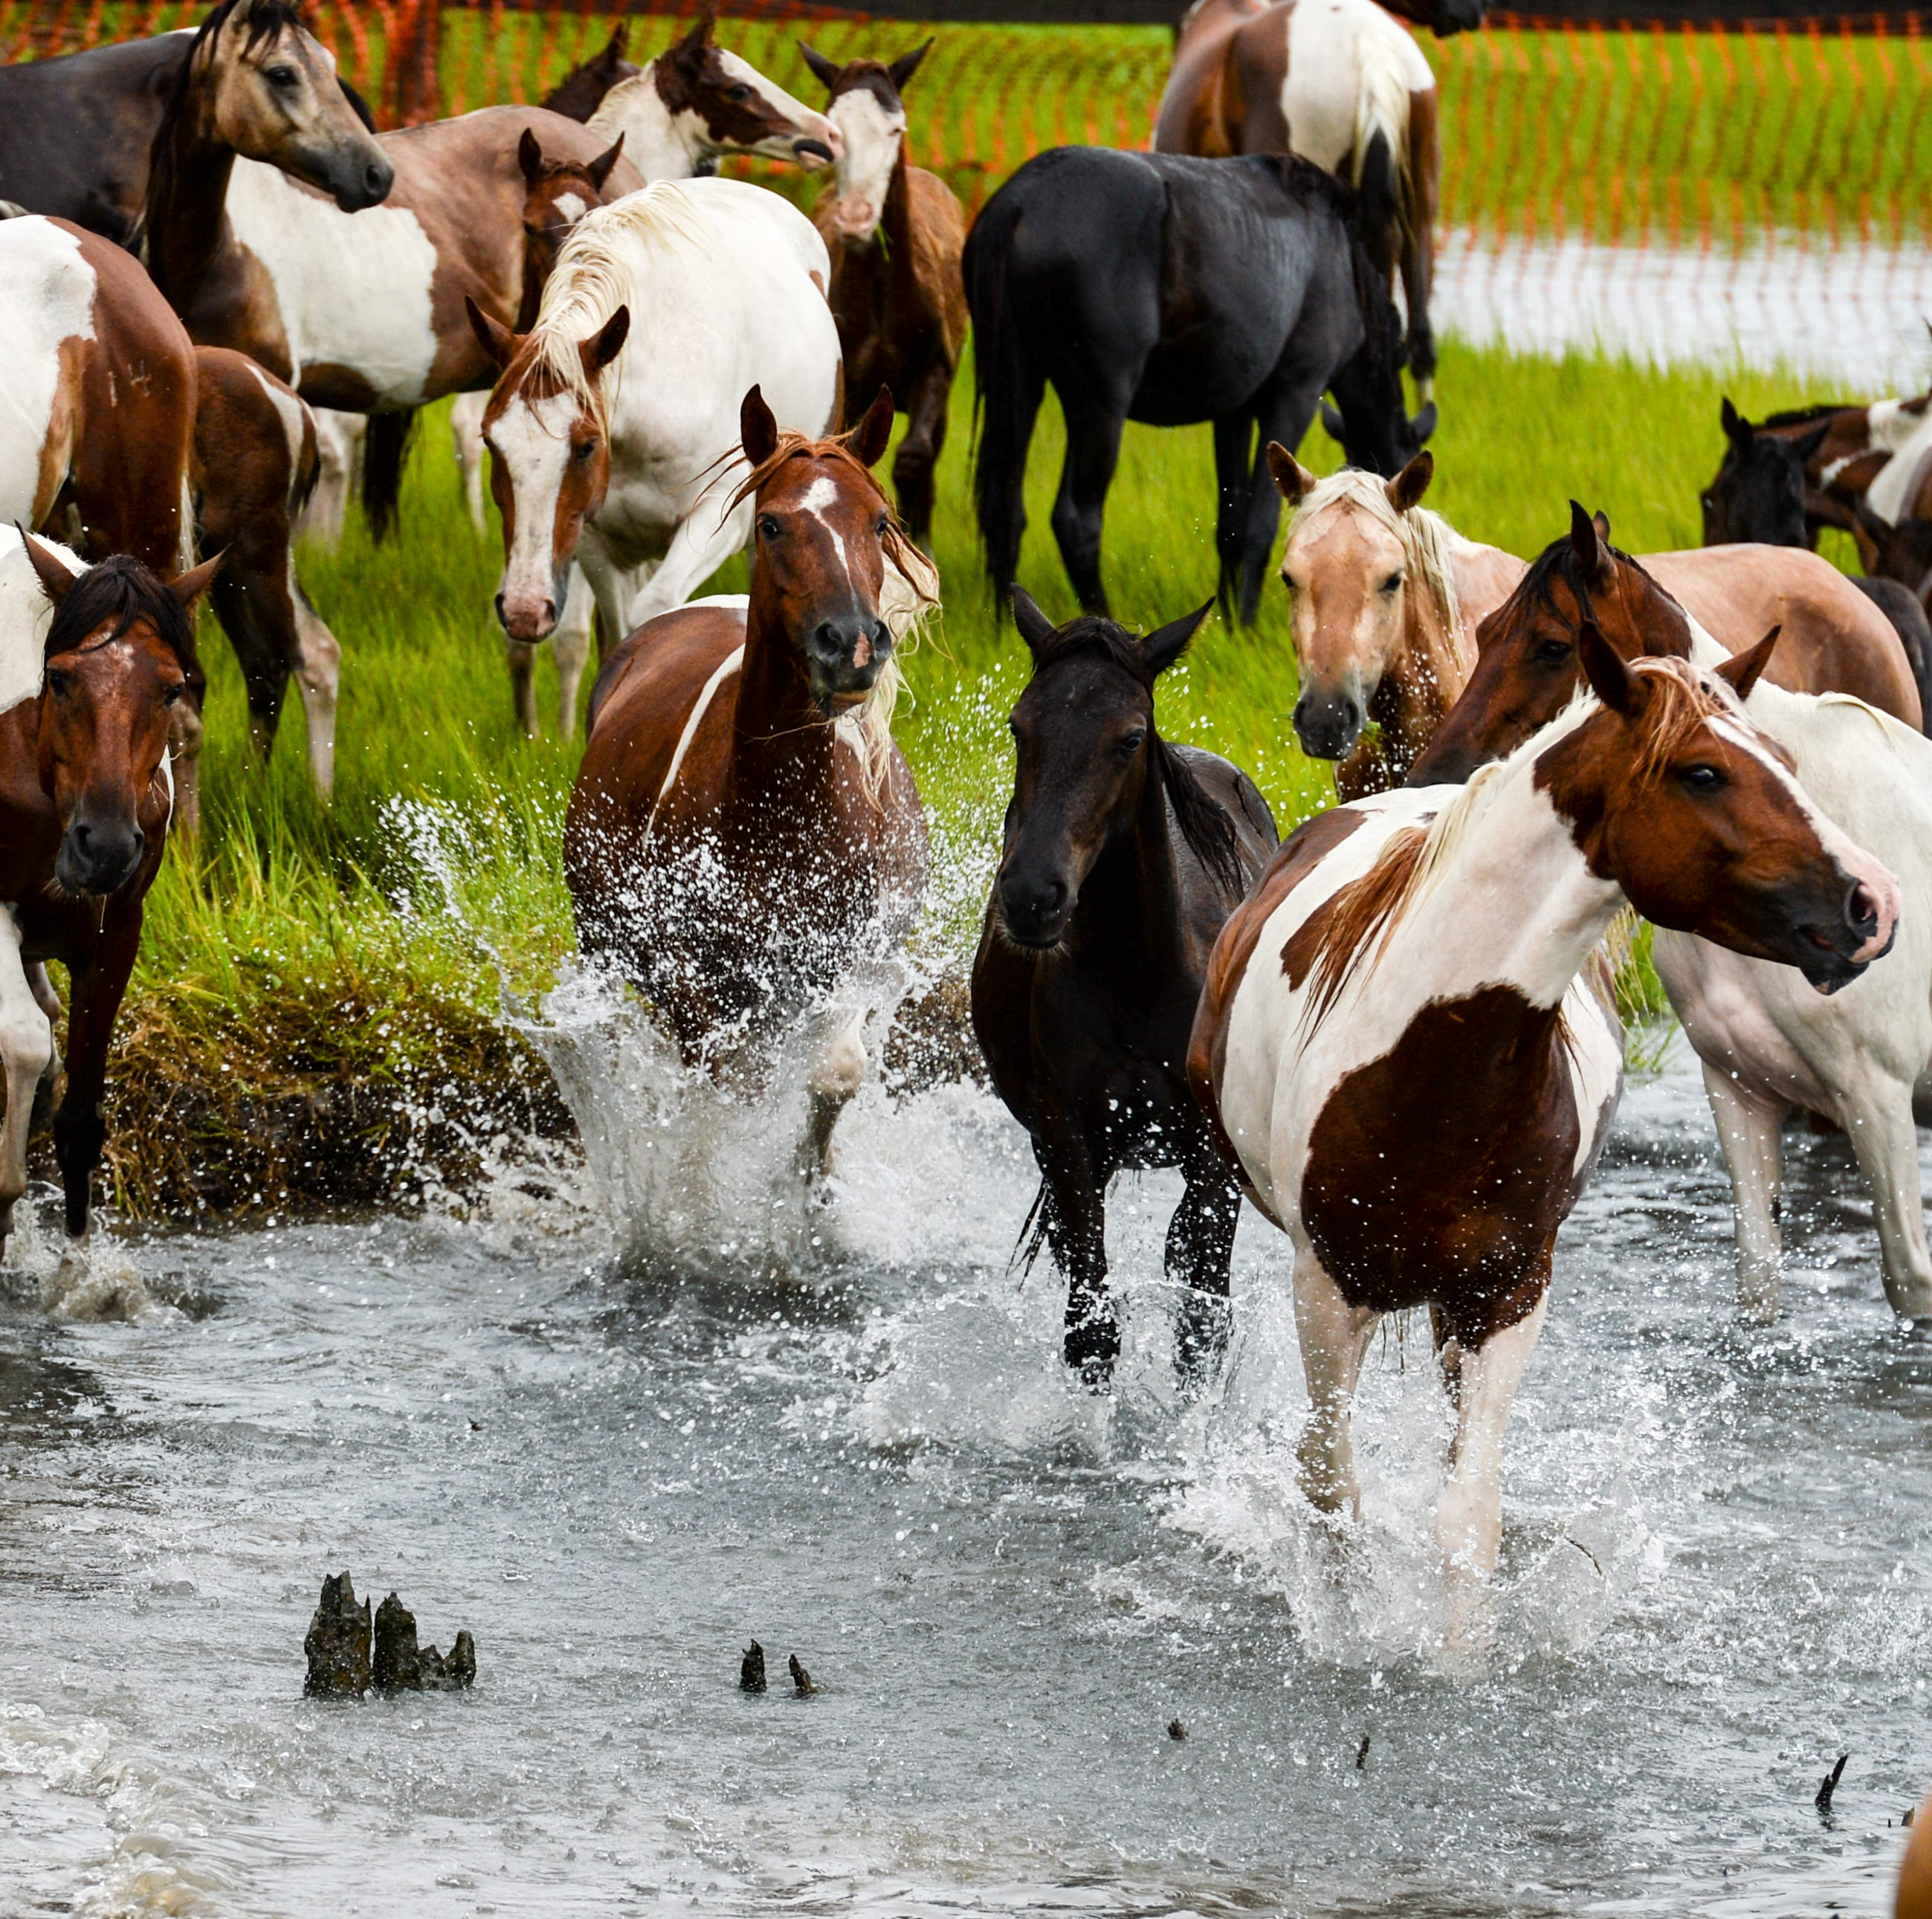 Swamp cancer: Chincoteague ponies to get preventative vaccine starting in April